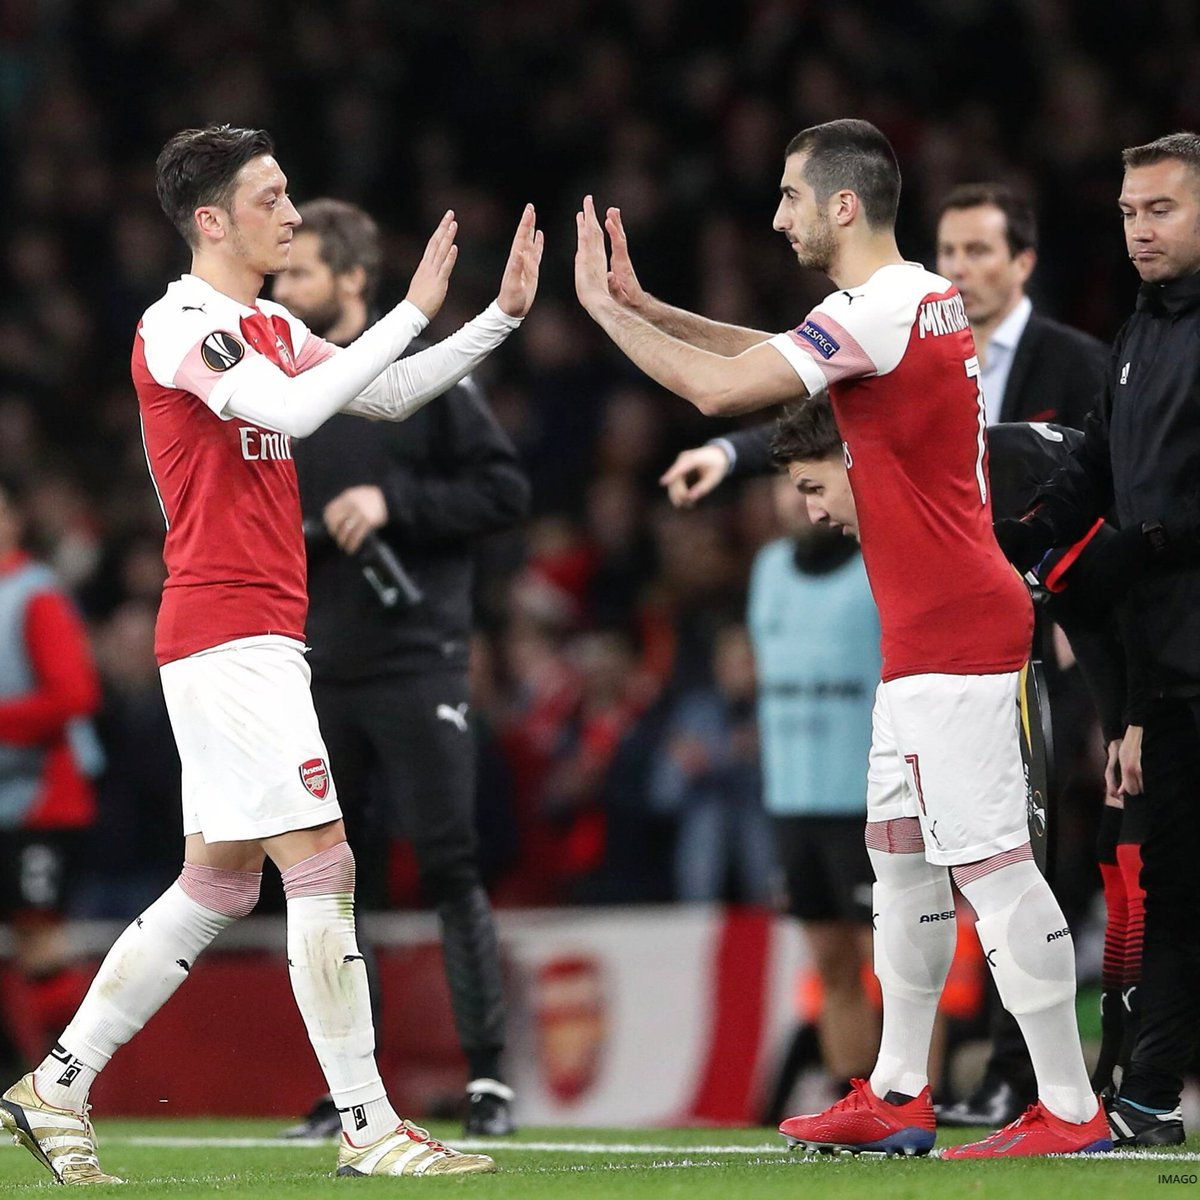 Great comeback from the team!   Difficult week for us, but we showed good character and determination to reach the #UEL quarters!  #WeAreTheArsenal #YaGunnersYa #M1Ö<br>http://pic.twitter.com/wdea1a3JkH